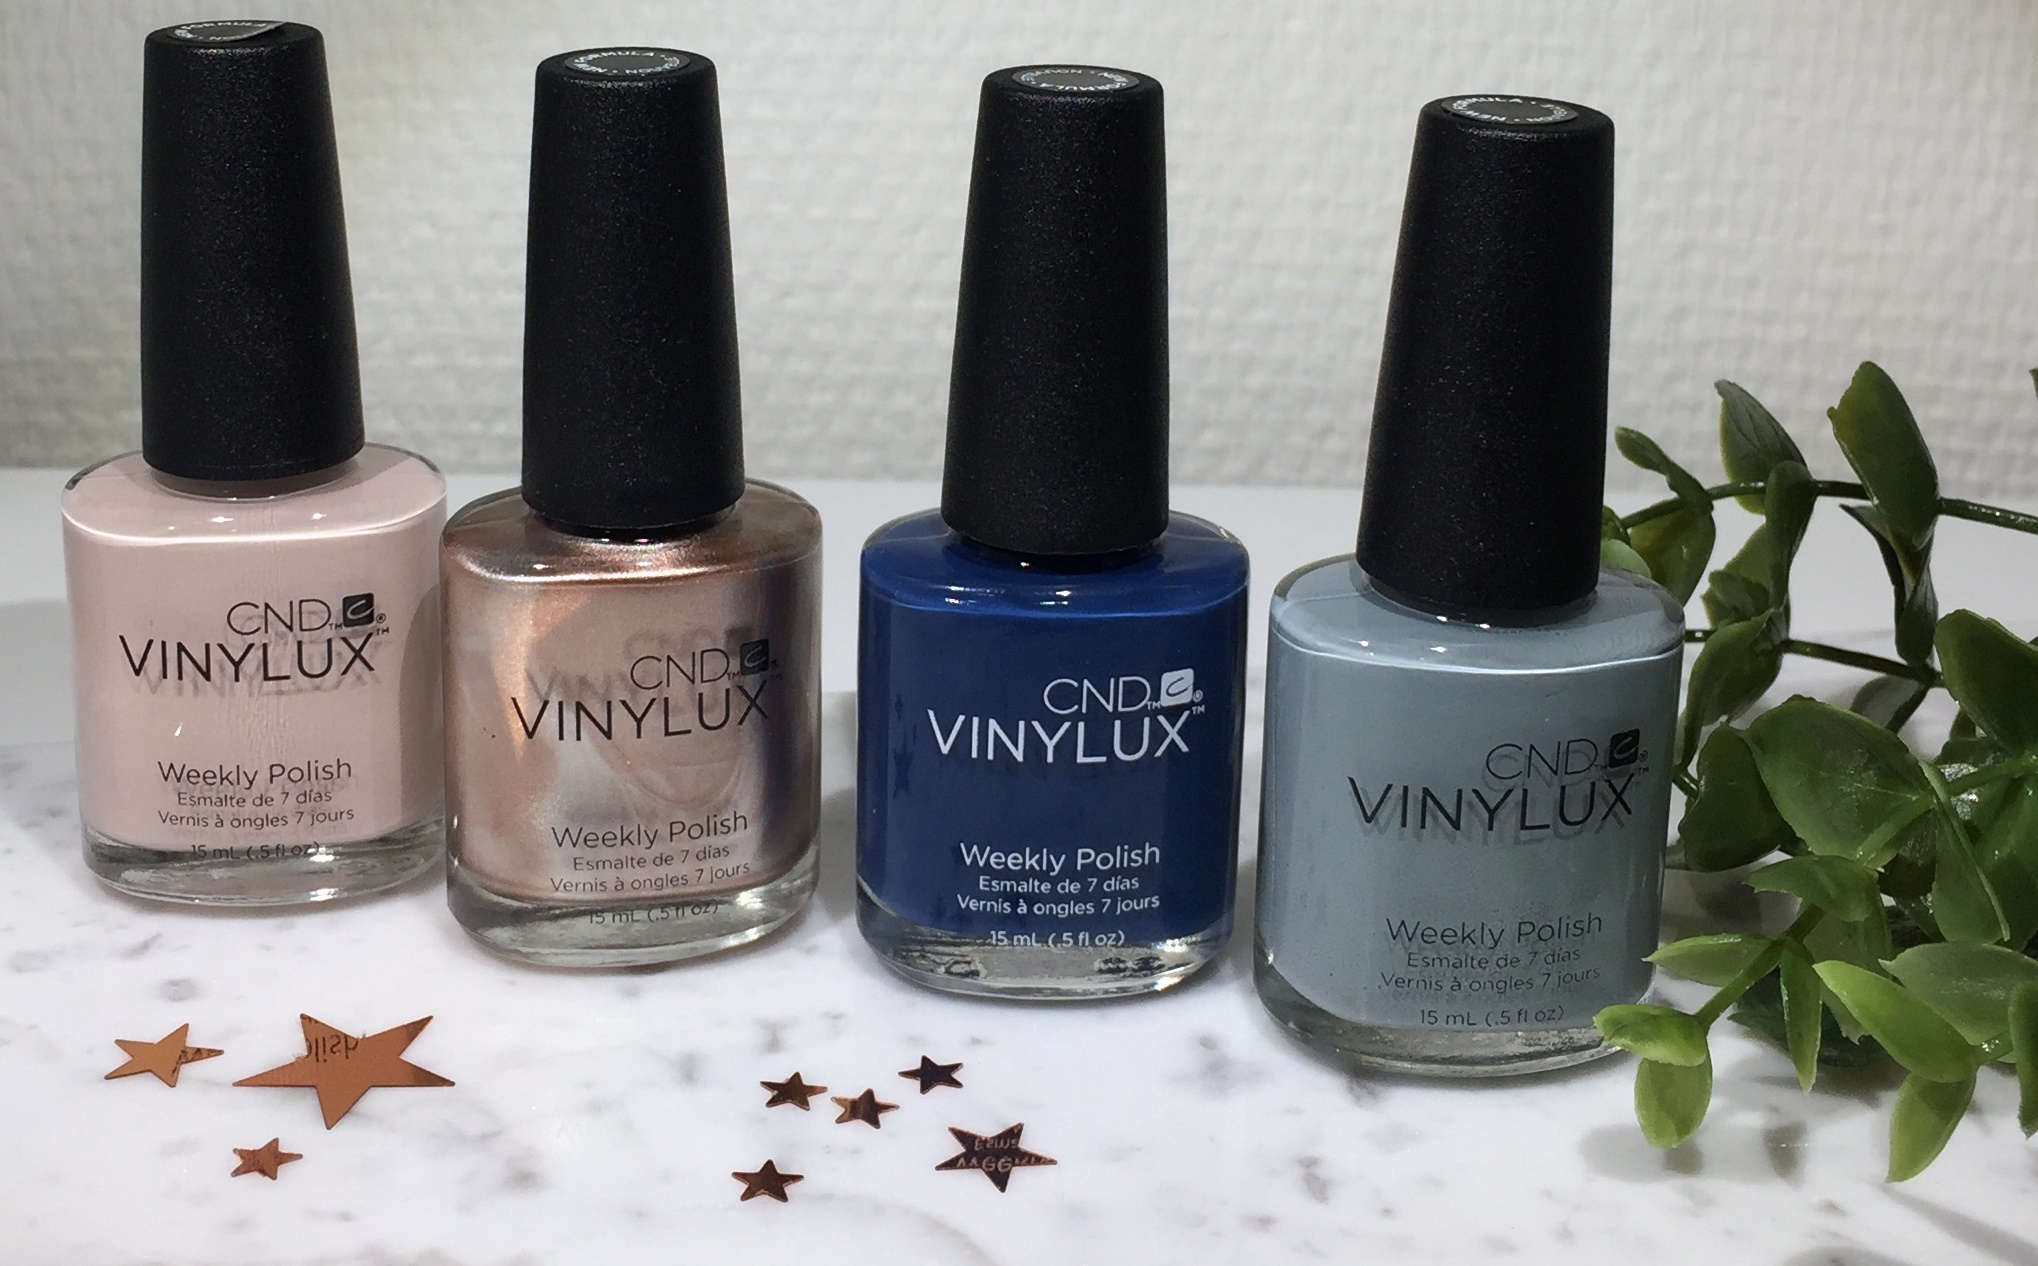 CND Vinylux, Glacial Illusion, Krummes Krummelurer, Swatches Glacial Illusion, Radiant Chill, Winter Nights, Cashmere Wrap, Mystic Slate,